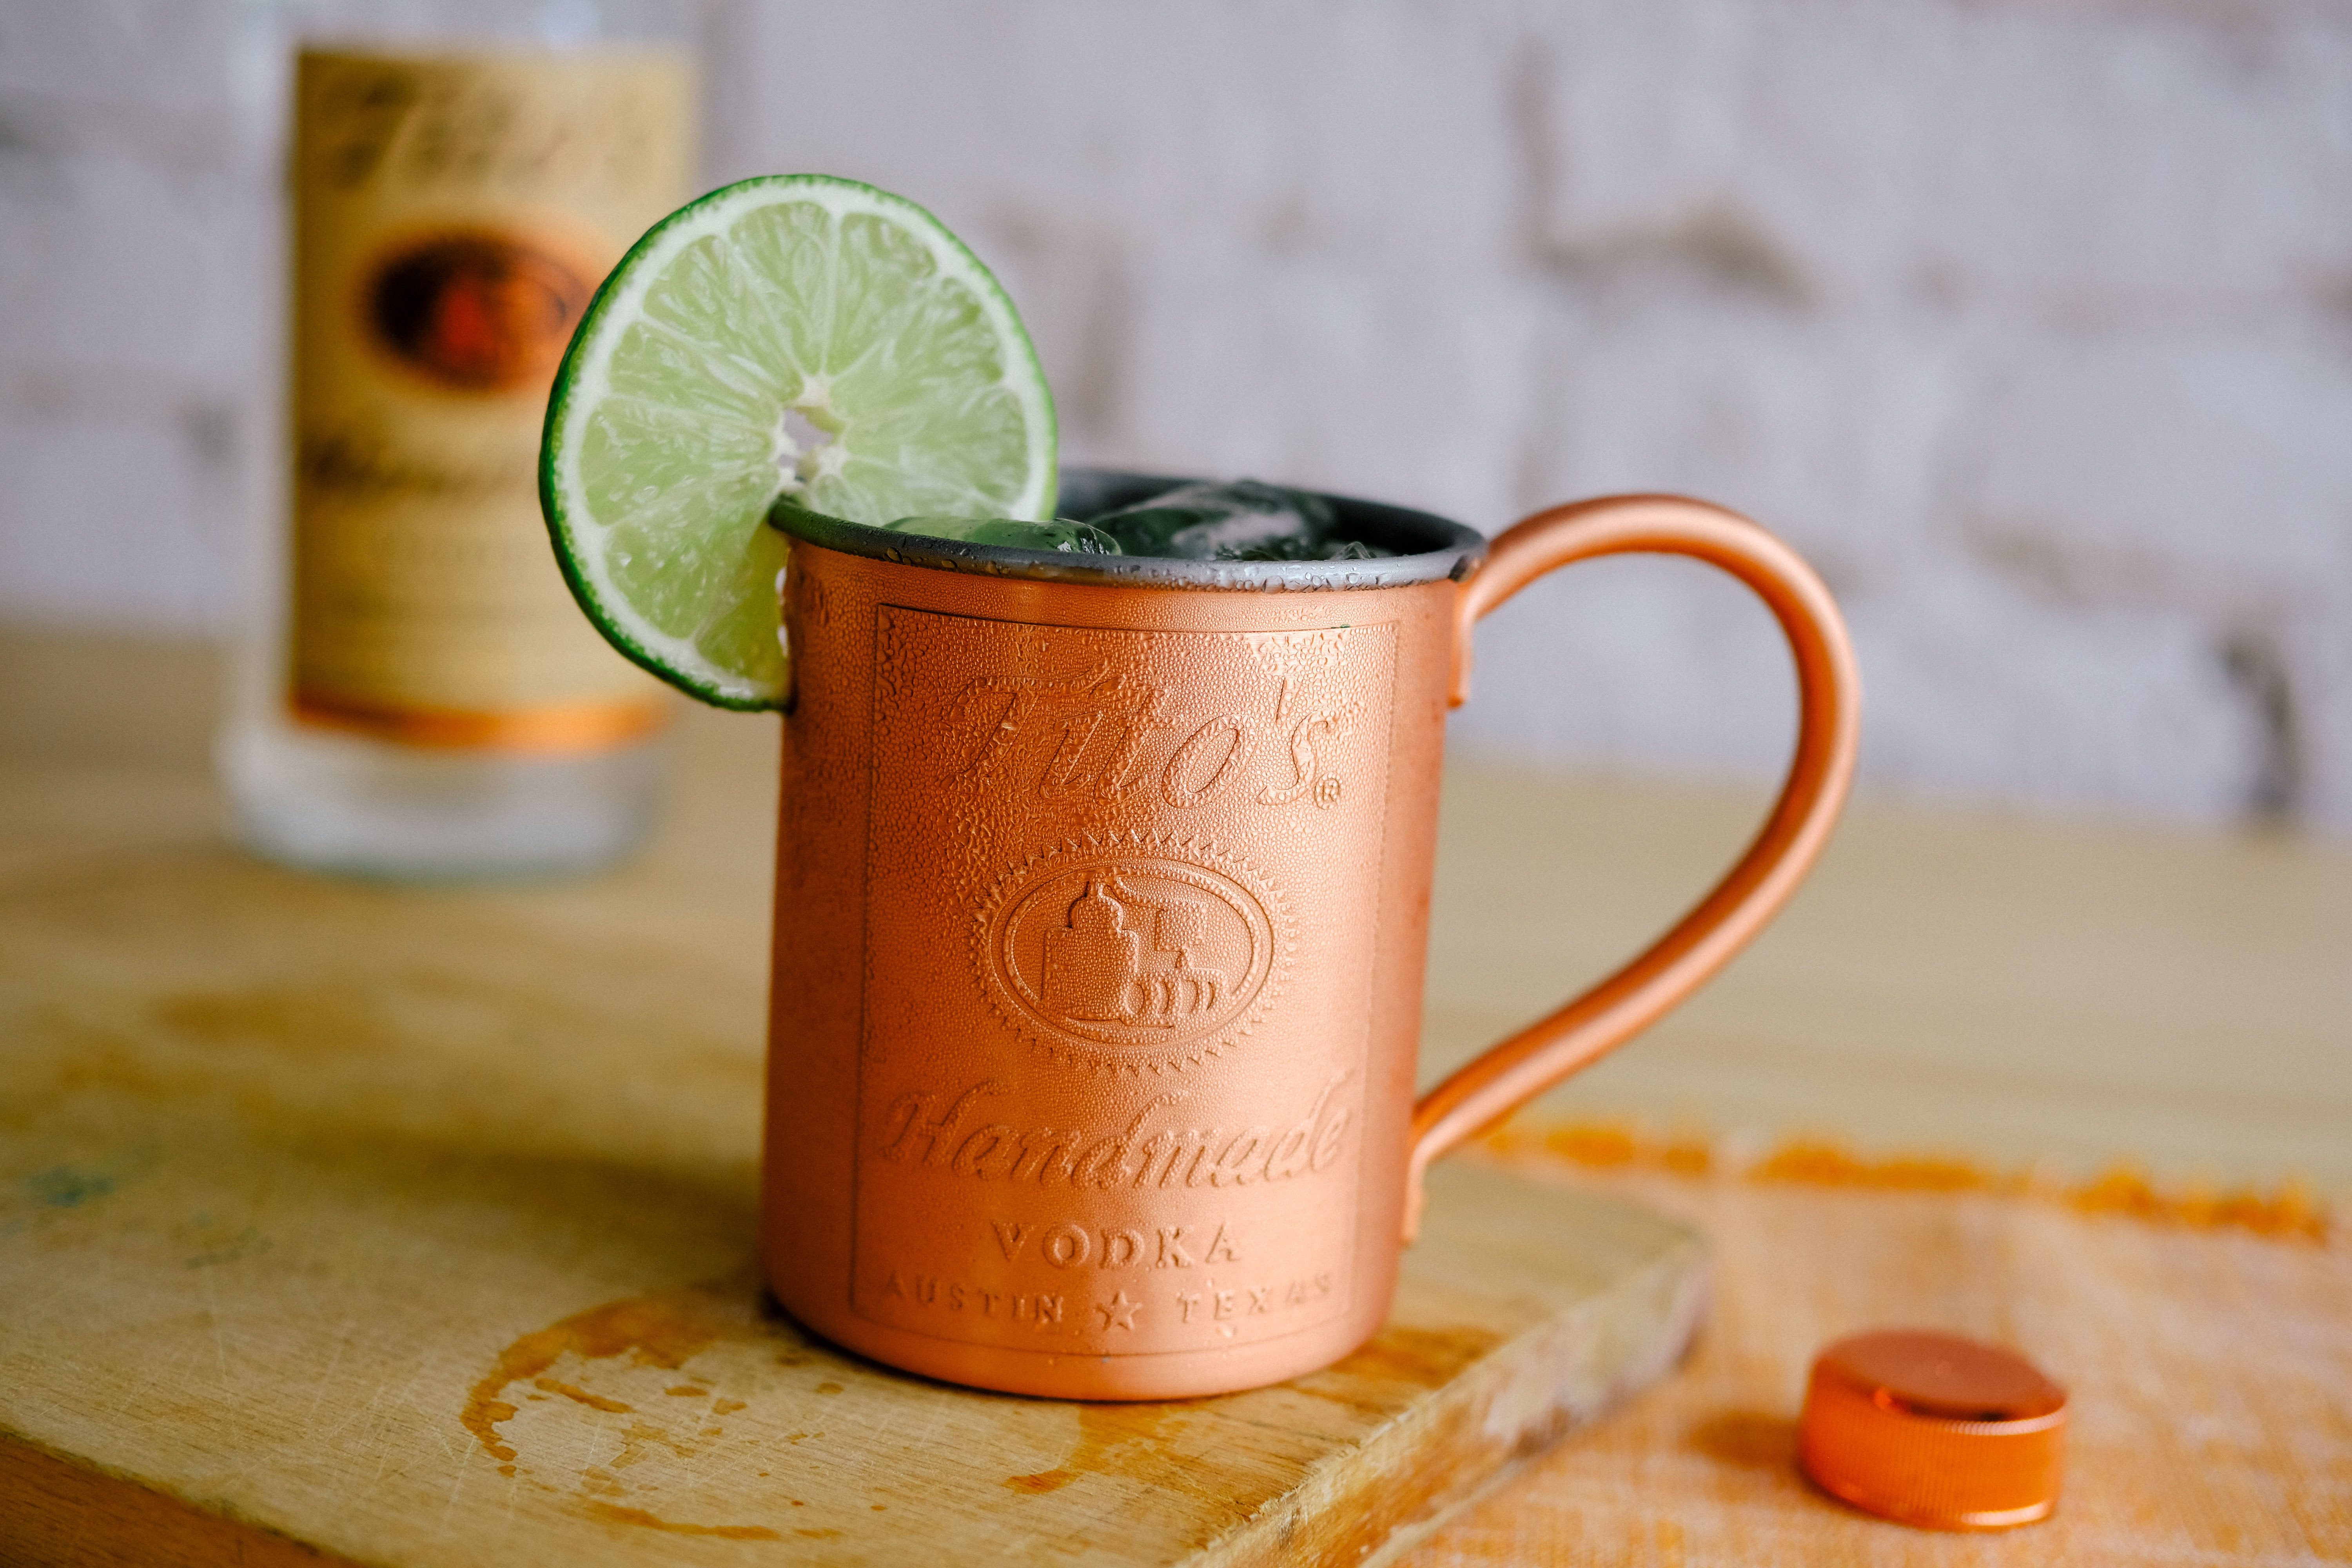 Cocktails in a Tito's Copper Mug garnished with a lime slice